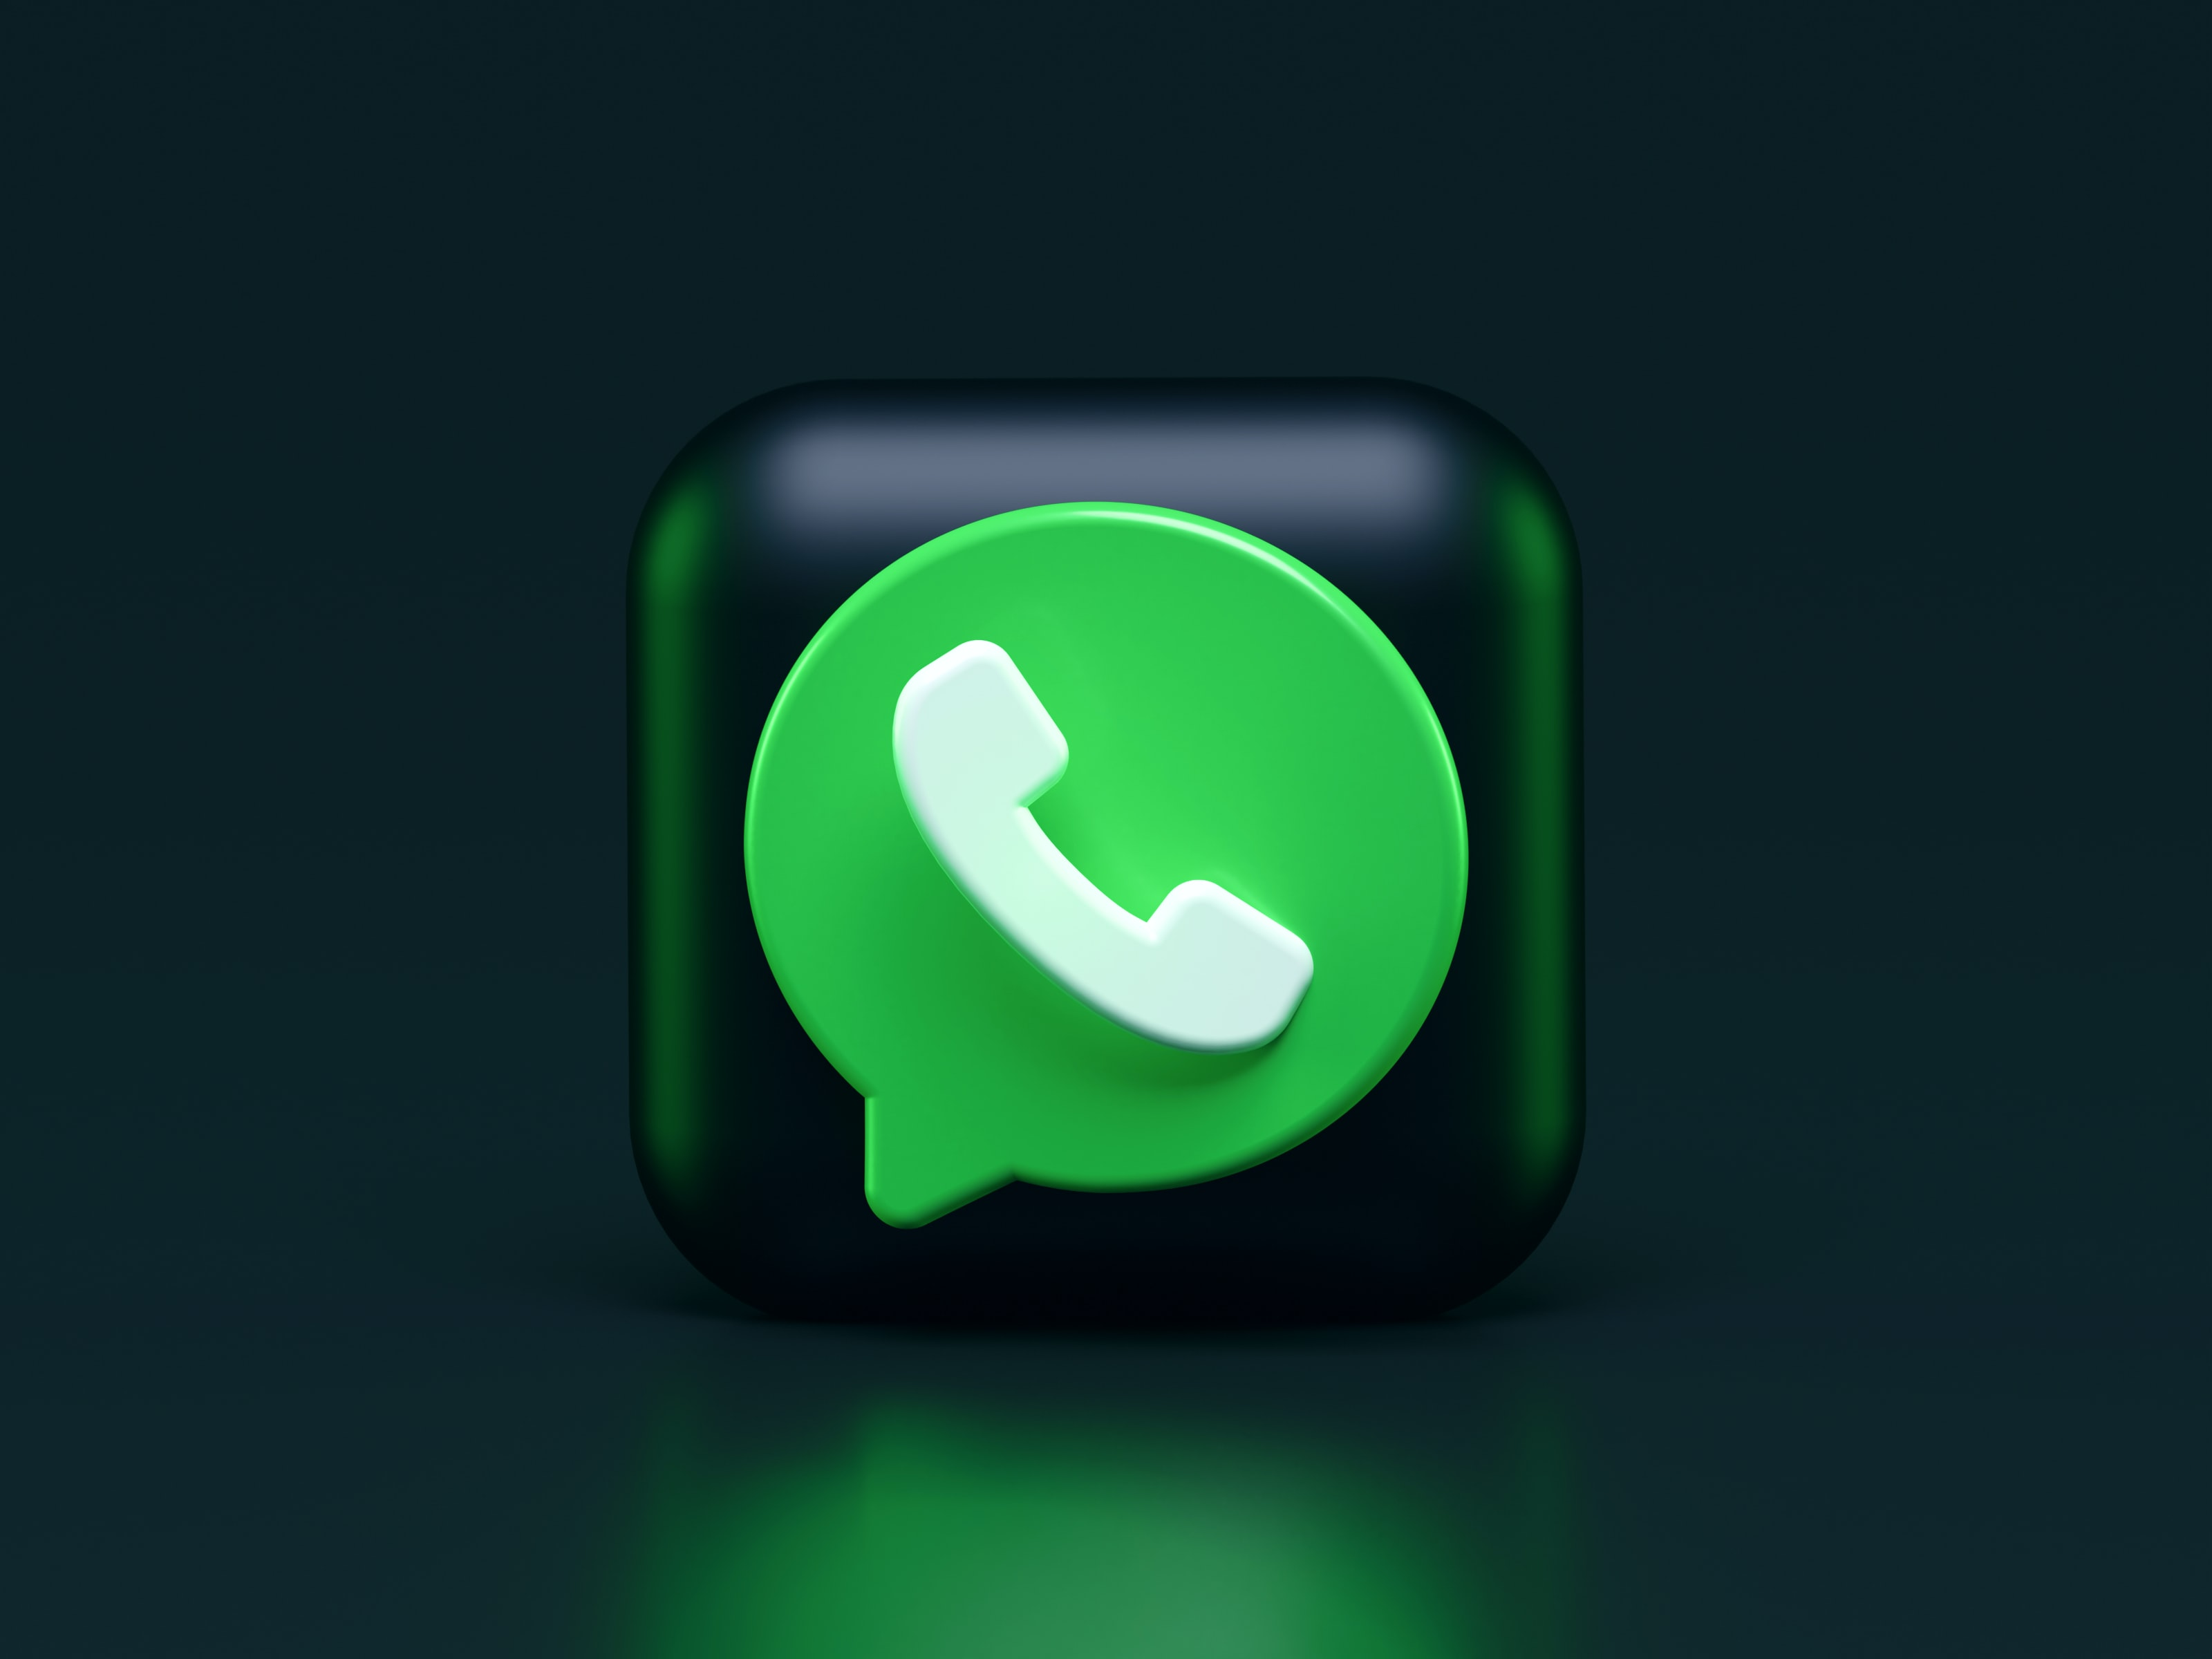 Gorilla Jobs Blog How to leave powerful messages so recruiters call you back smartphone call button icon